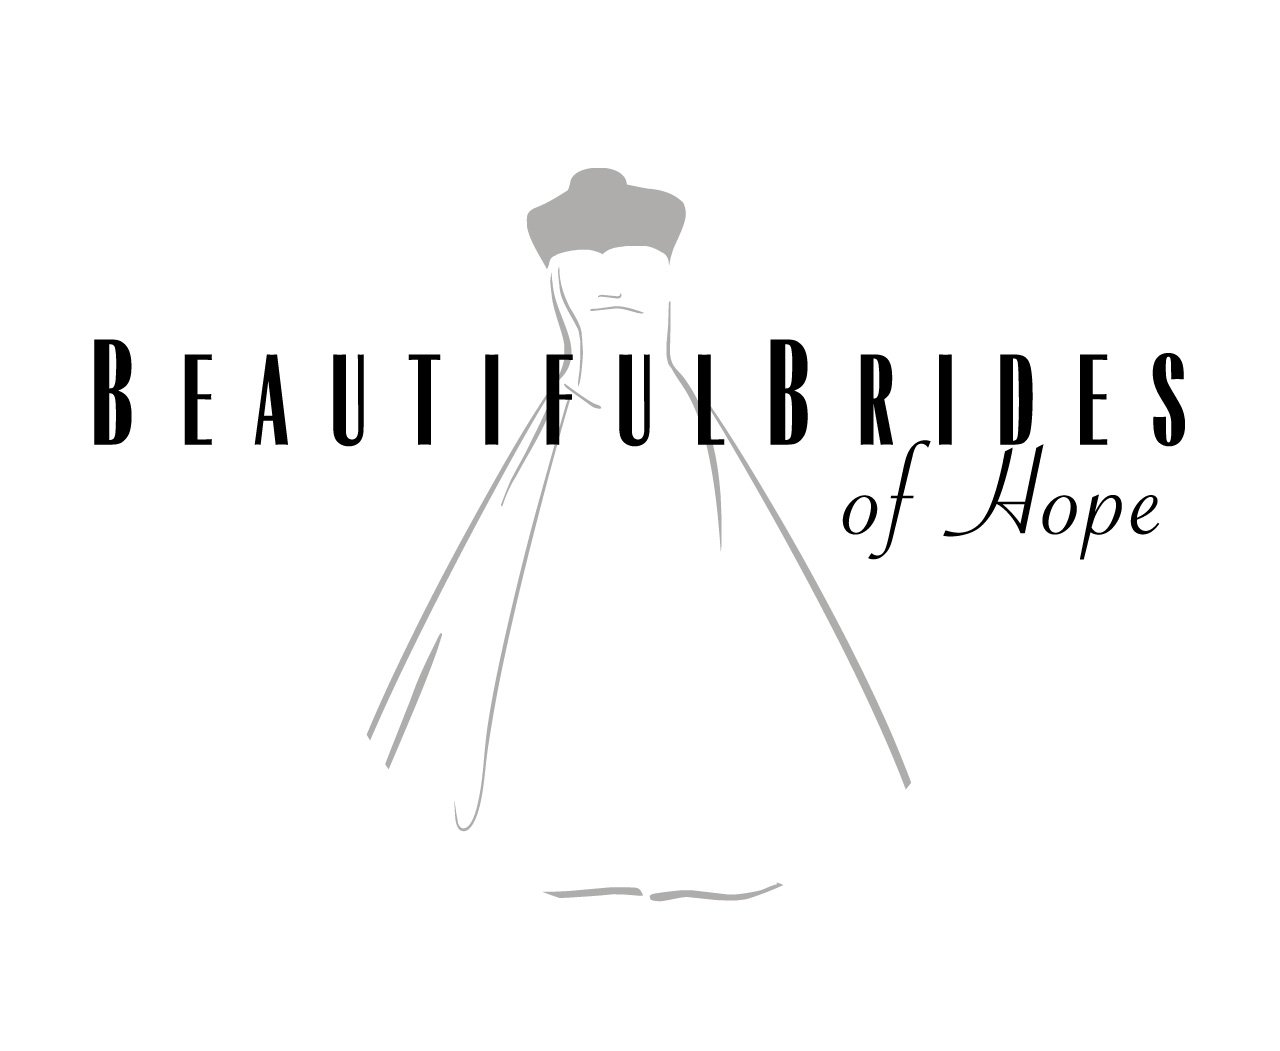 The Beautiful Brides of Hope bridal couture logo